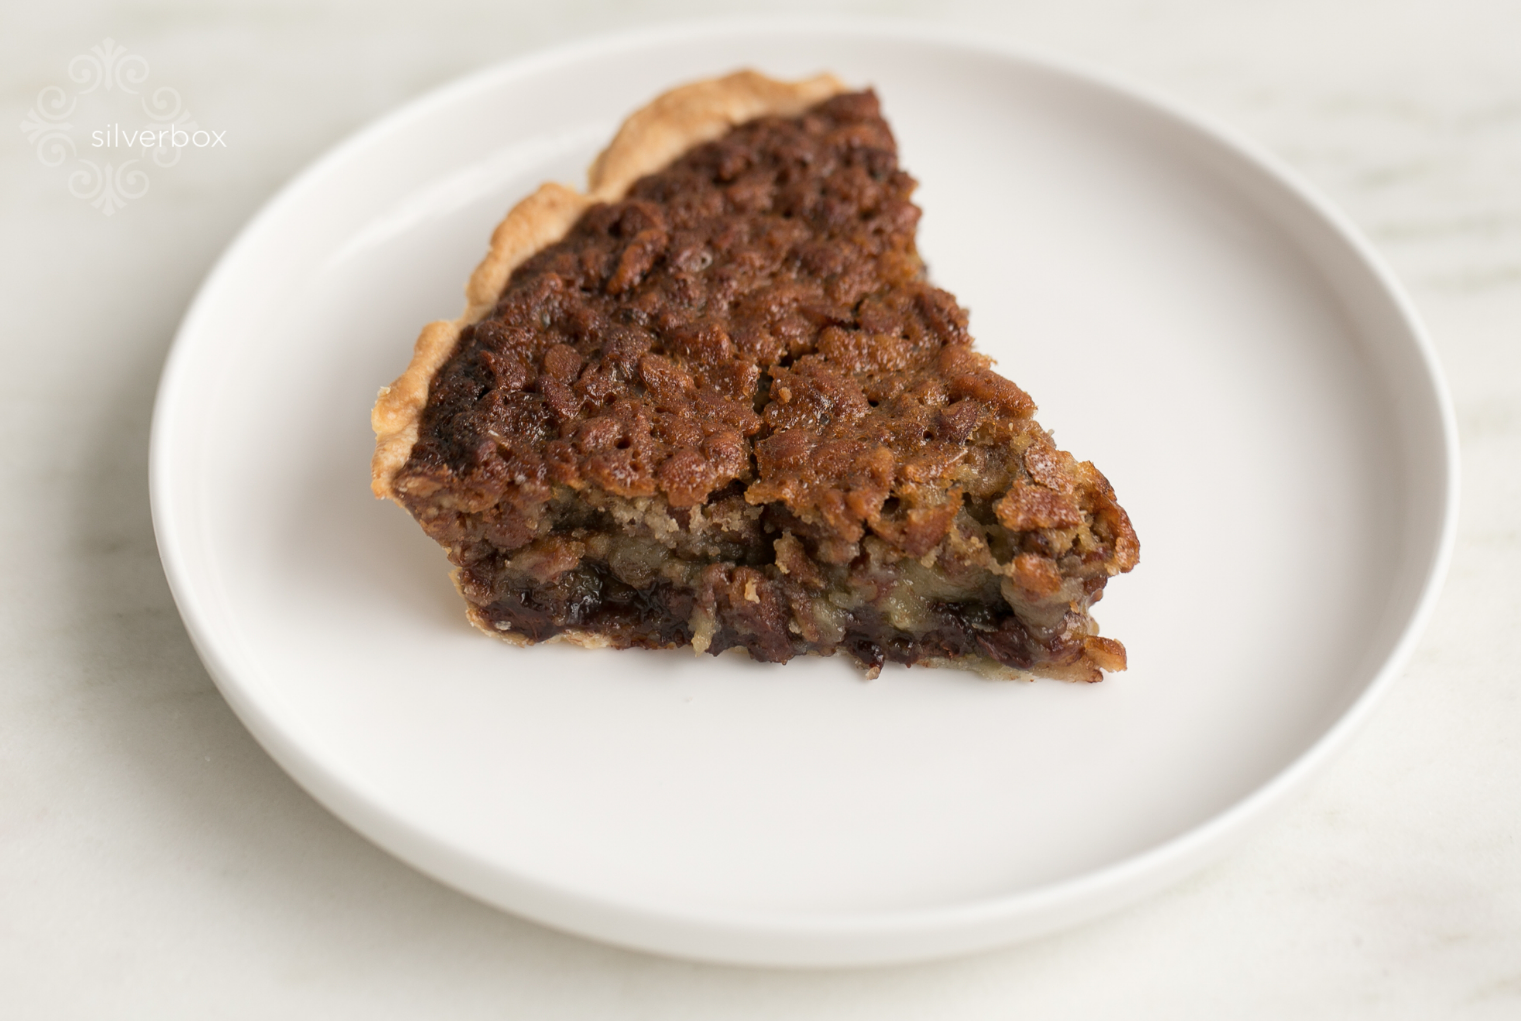 Chocolate Bourbon Pecan - With chocolate, bourbon, and pecan in one pie— what's not to love?The mix of a crunchy nut topping with a smooth chocolate center is enough to have you thinking about this pie months after your last bite. The hints of bourbon round out this decadent treat and move it from snack level to full-blown dessert. Drop by the shop and see for yourself!